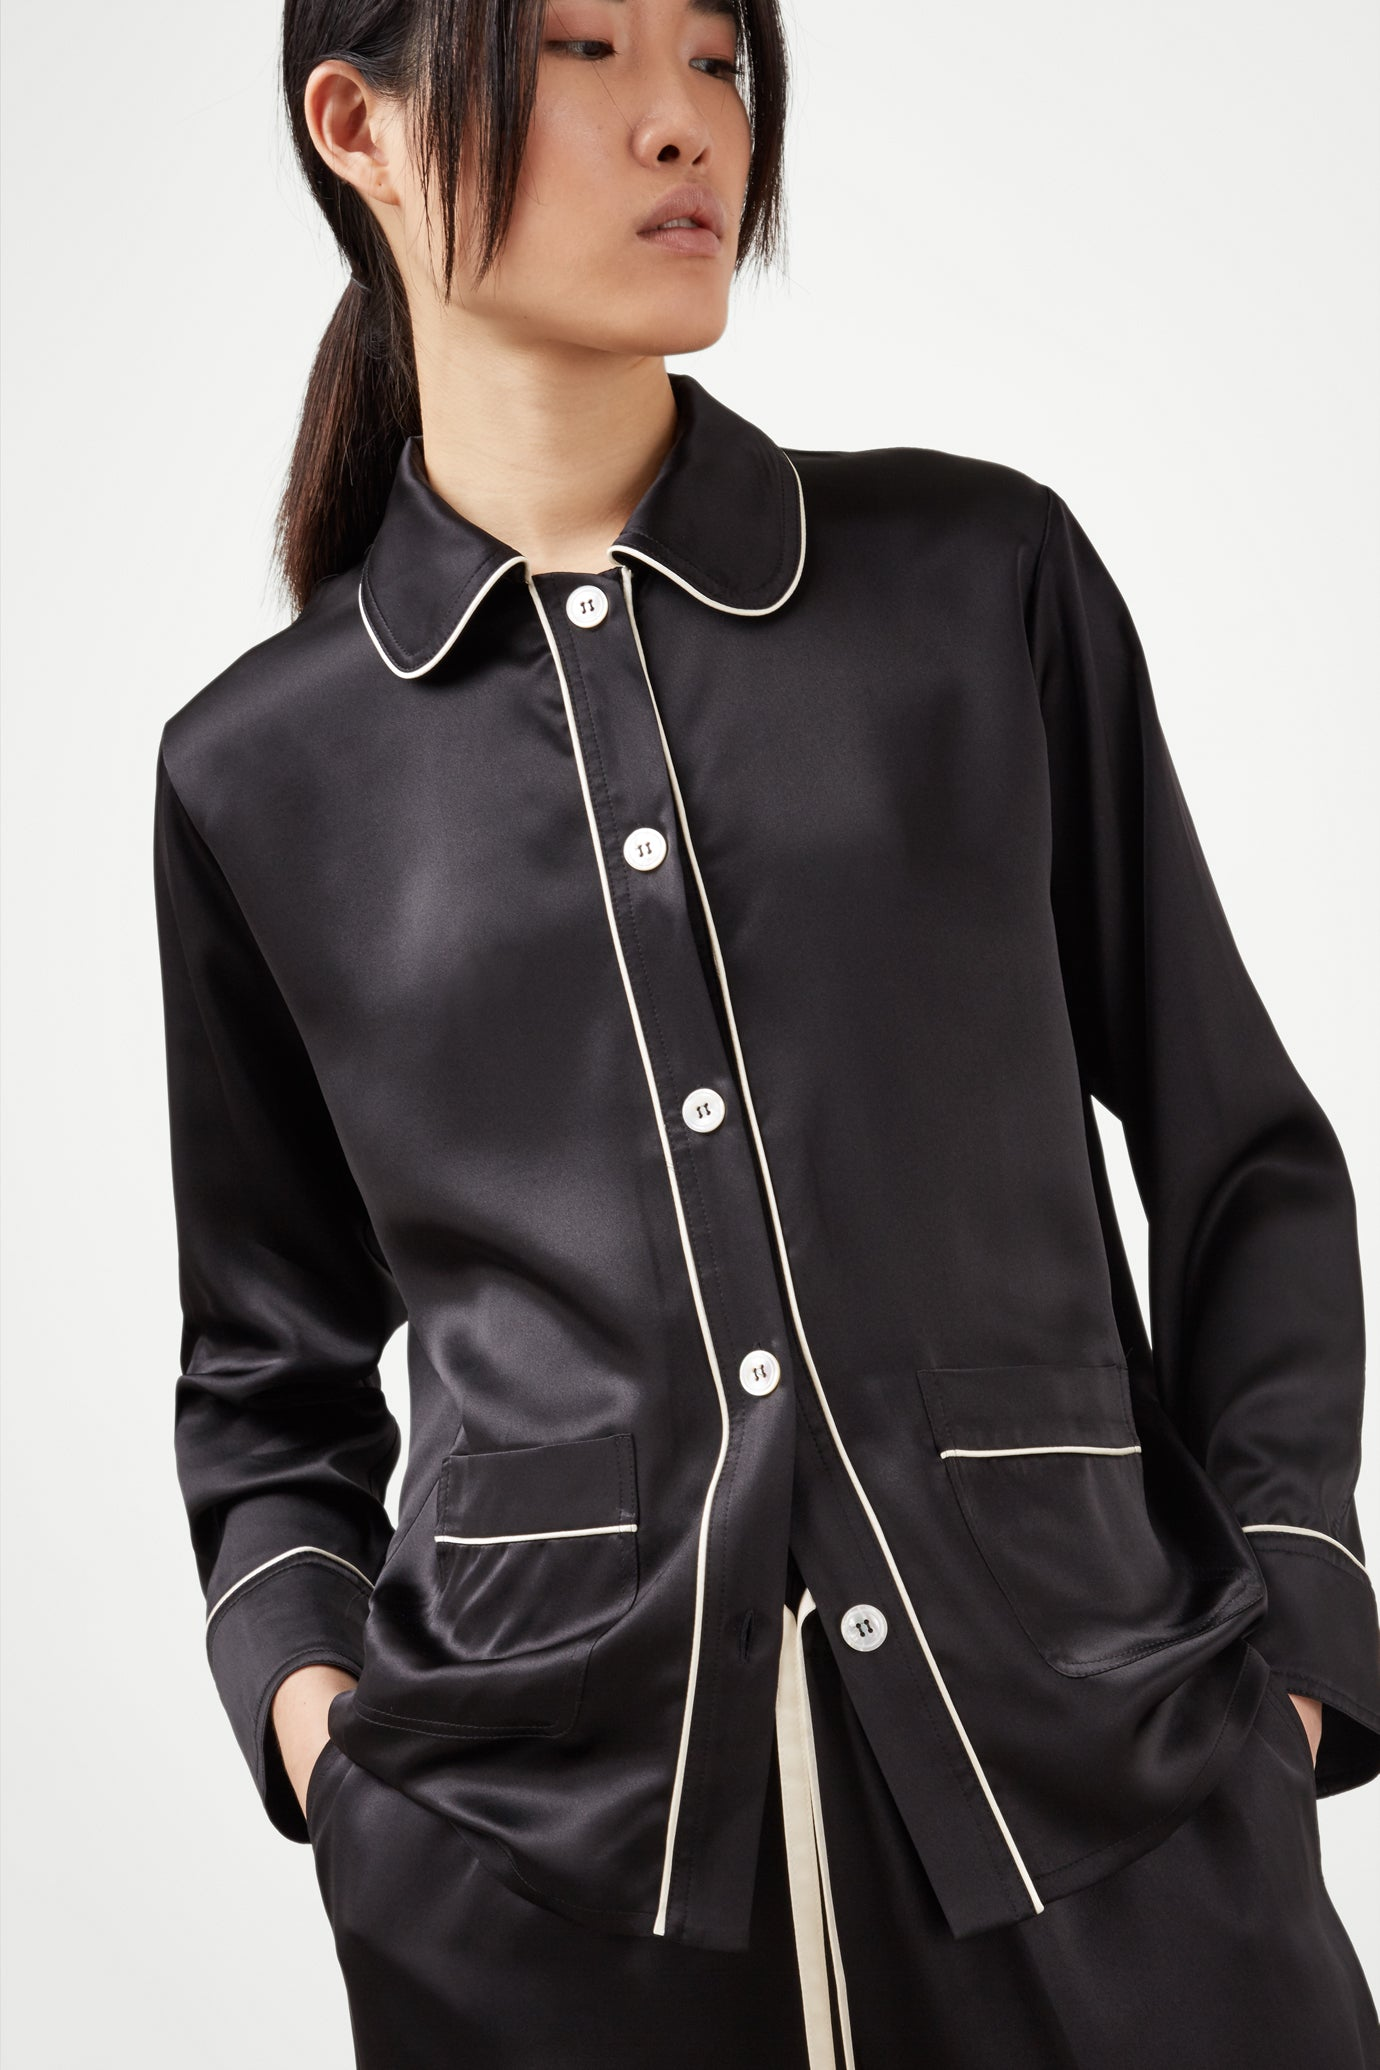 The Piped Shirt - Black & Ivory Silk - SERENA BUTE